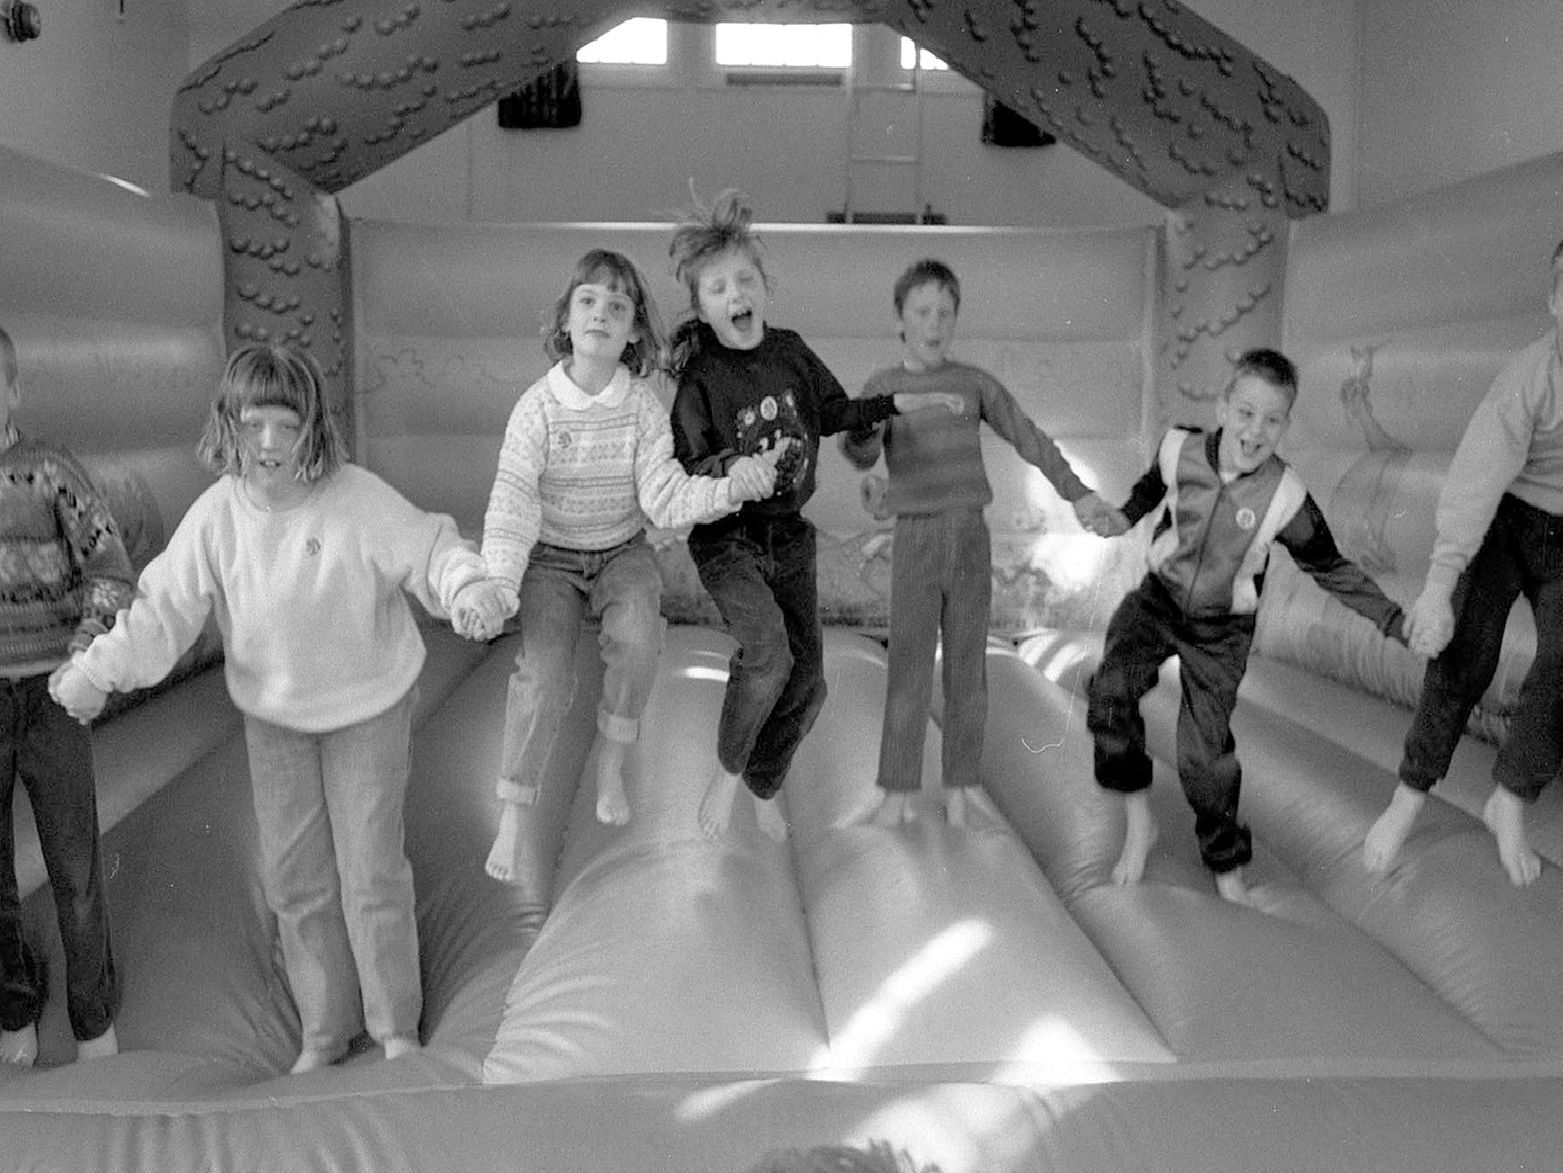 1990: Children from Robert Jones School in Blidworth are having fun during their sponsored bounce. Did you take part in this?